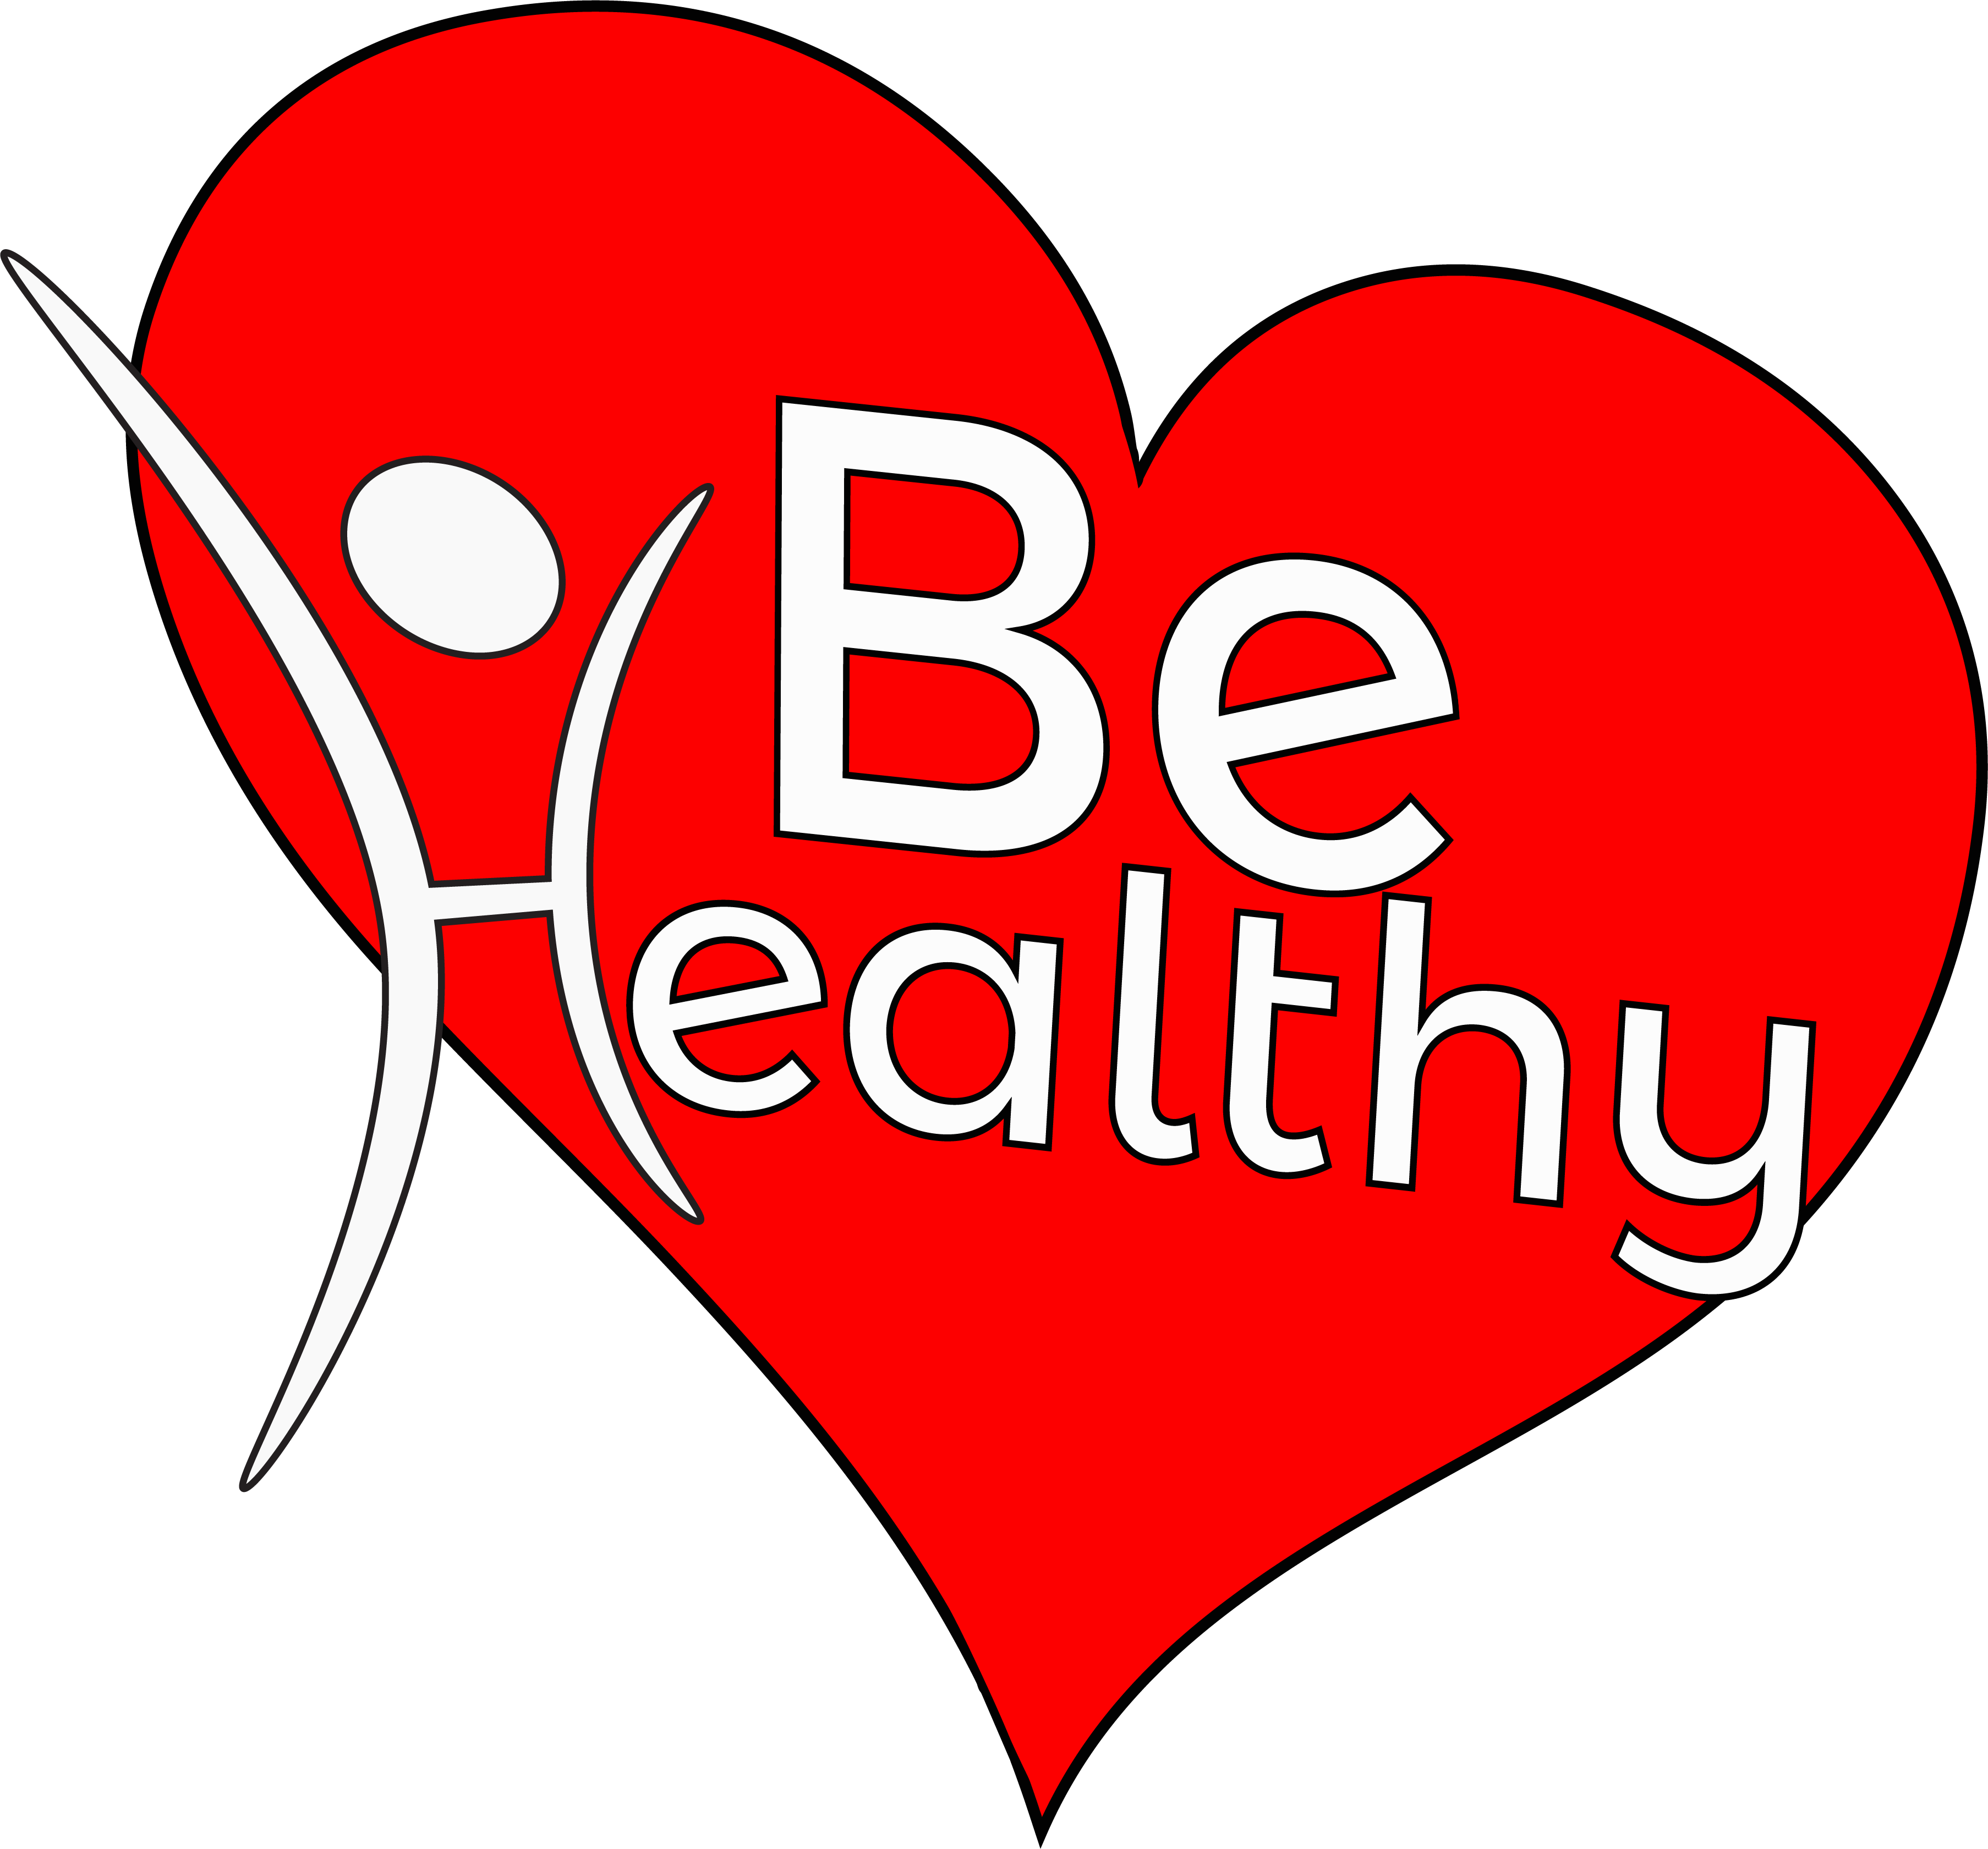 Health clipart png 3 » Clipart Station.